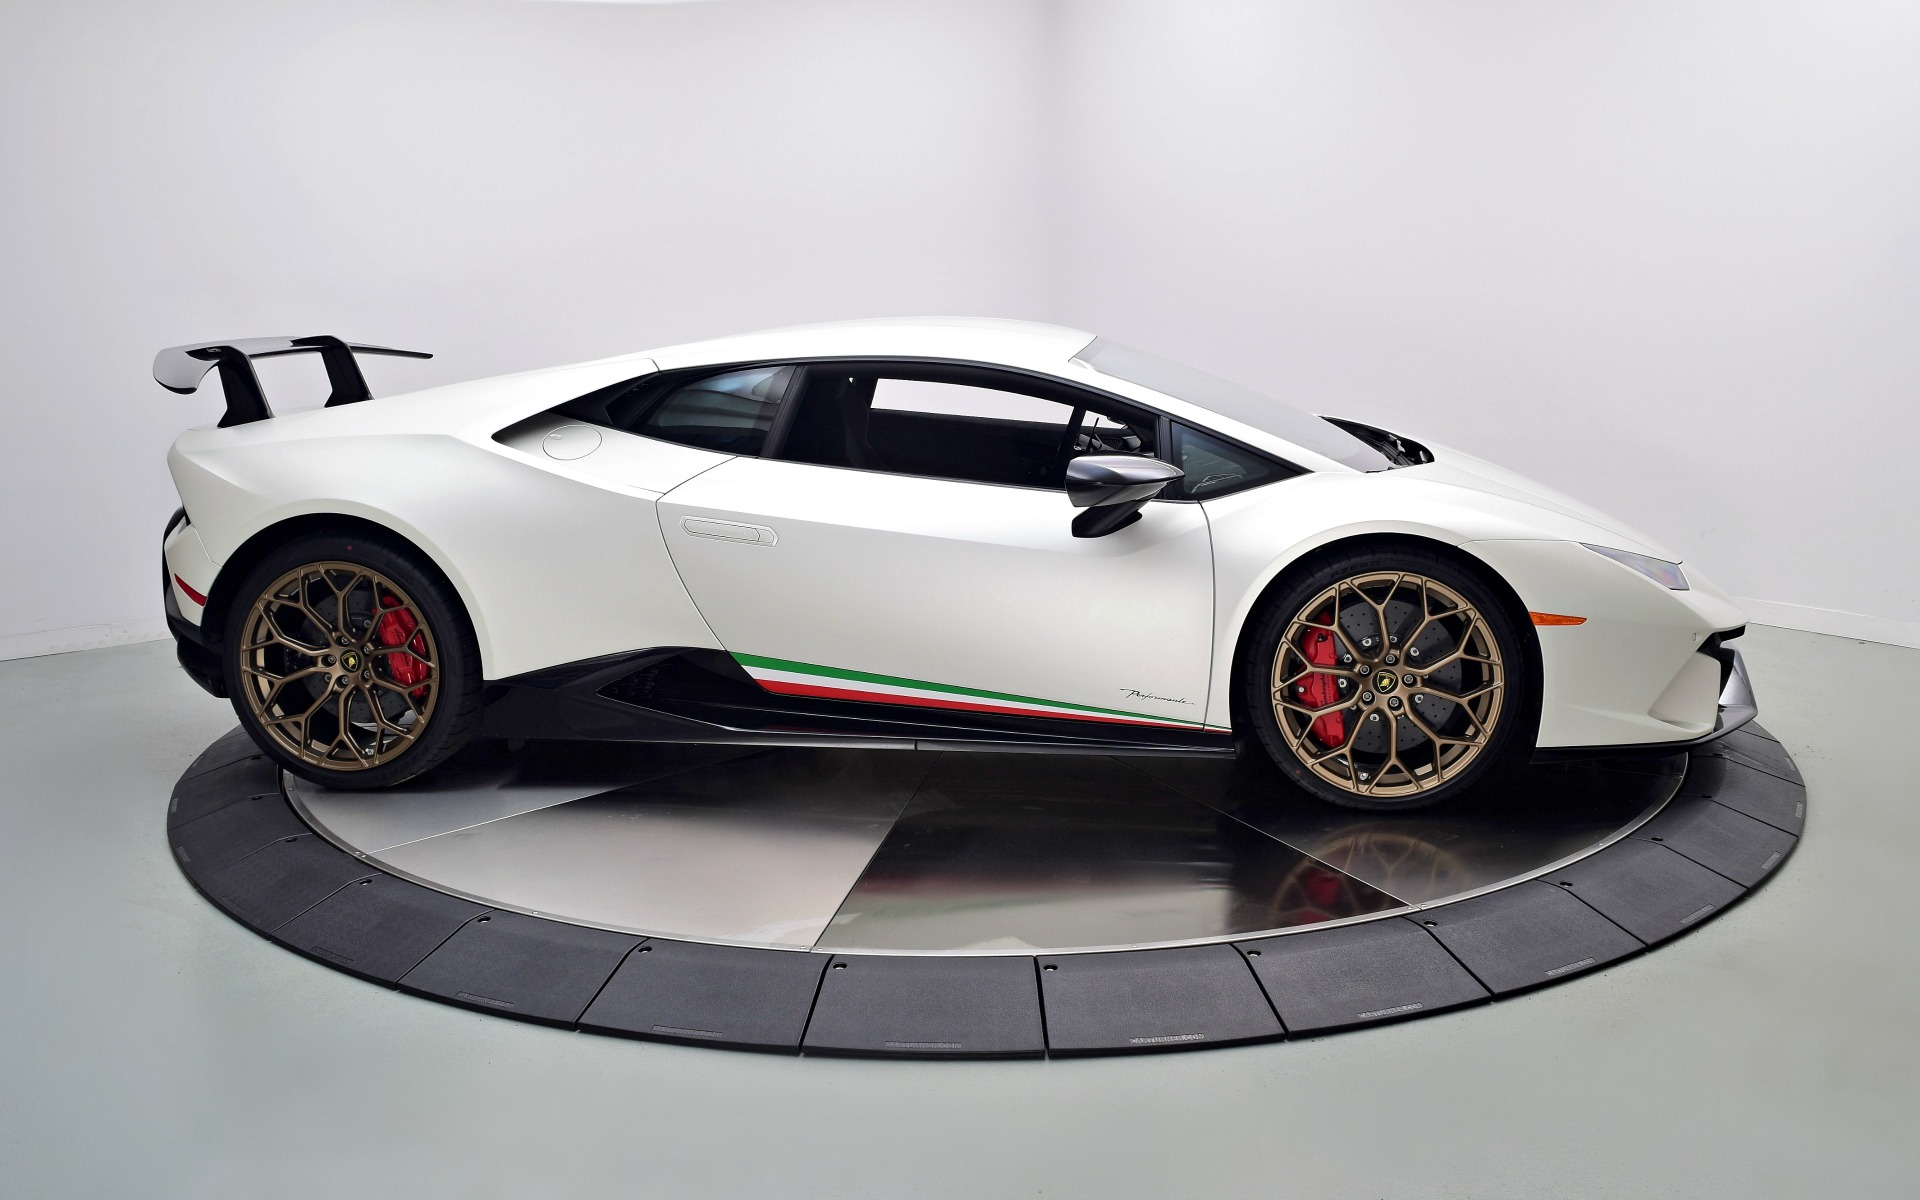 2018 lamborghini huracan performante lp 640 4 performante for sale in norwell ma a08913. Black Bedroom Furniture Sets. Home Design Ideas